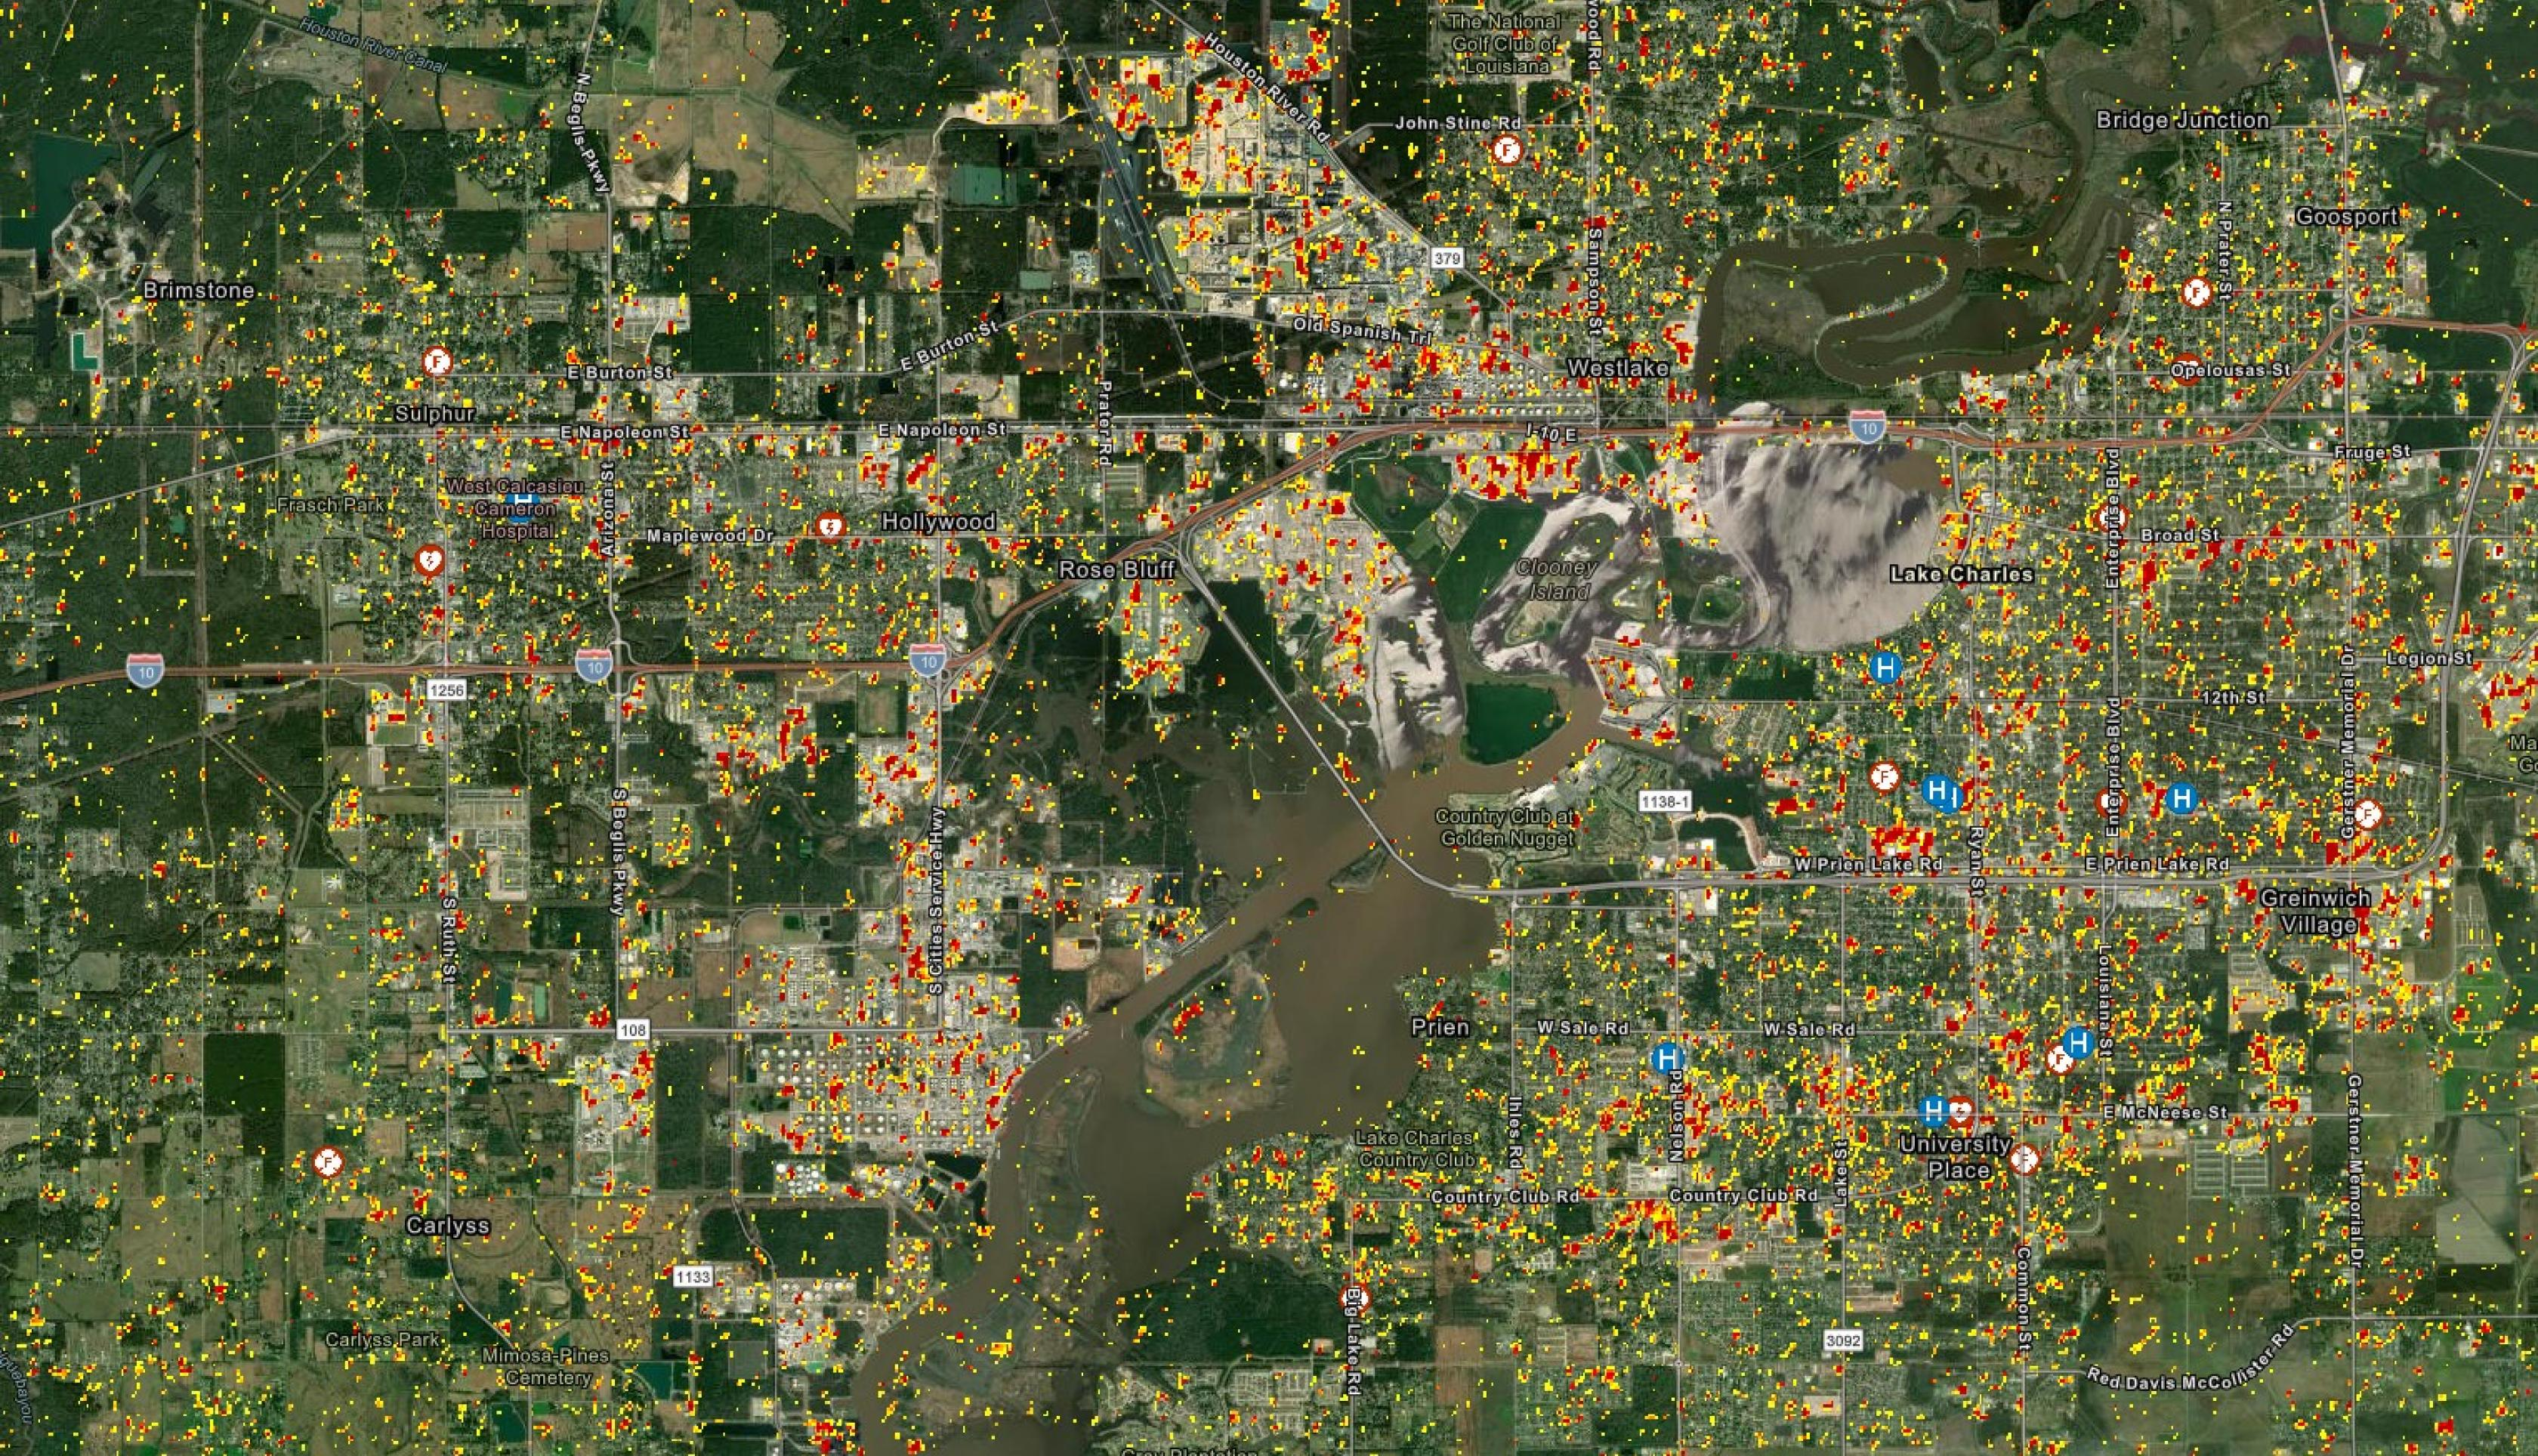 This Damage Proxy Map (DPM) shows likely damaged areas in red and yellow in Lake Charles, LA, due to high winds and flooding from Hurricane Laura. The map is derived from synthetic aperture radar (SAR) data acquired by European Space Agency (ESA) Copernicus Sentinel satellites before (Aug. 20, 2021) and after (Sep. 1, 2021) the event. Satellite observations can be combined with data on local infrastructure and lifelines, such as the roads, hospitals and fire stations shown here, to help local response agenc